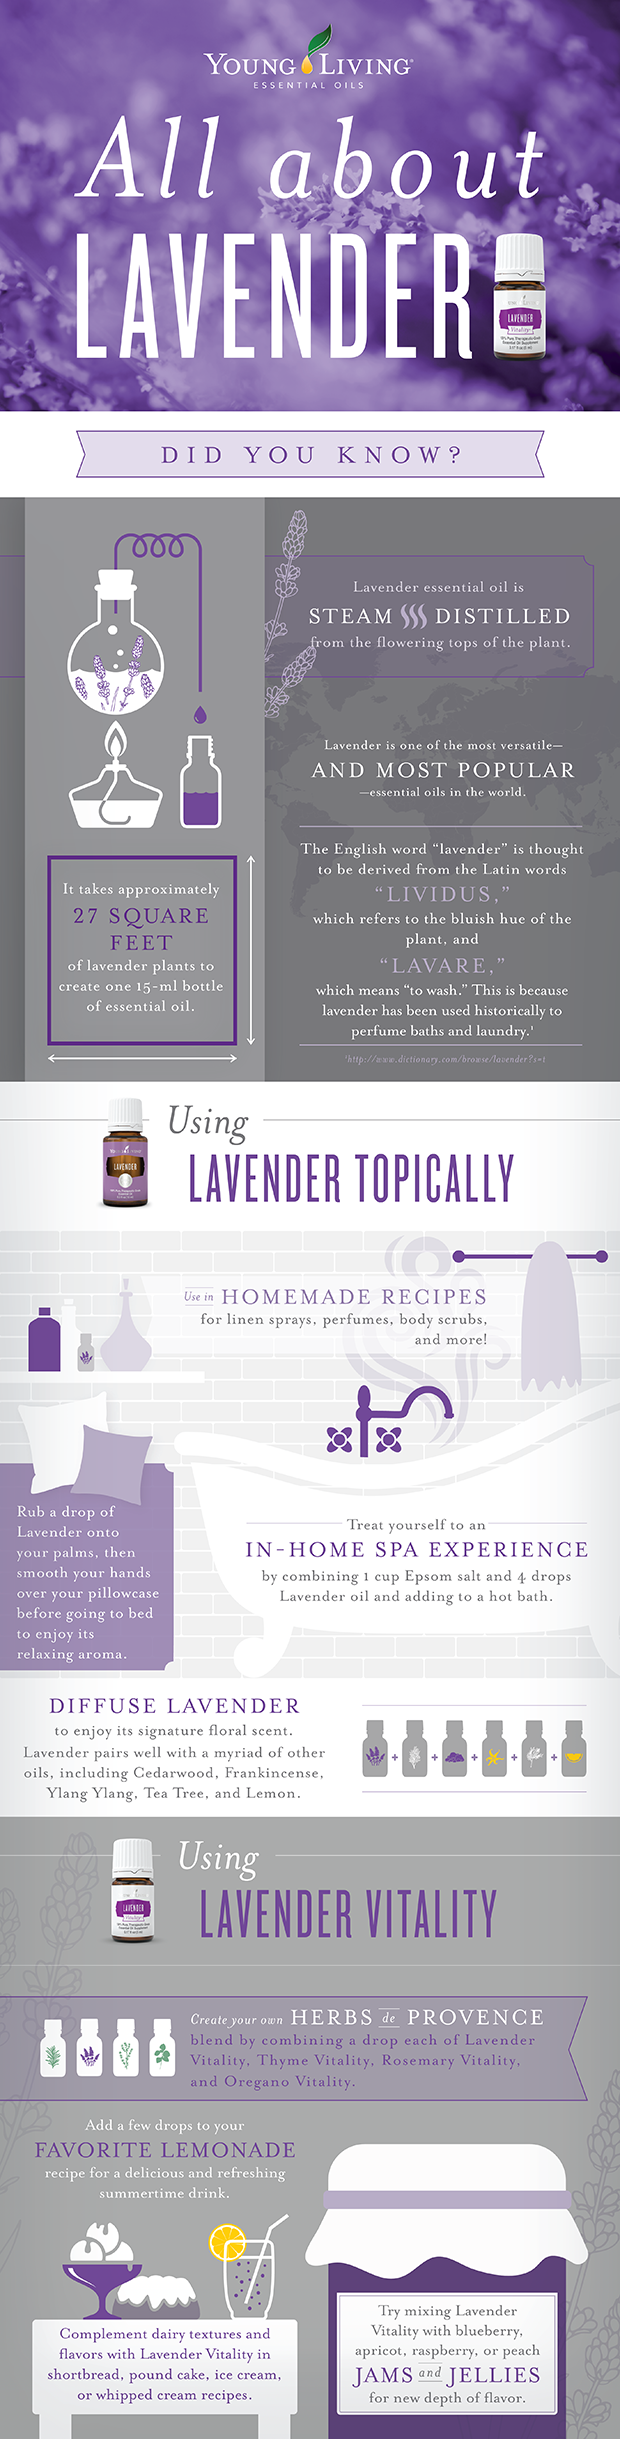 Young Living All About Lavender - Lavender Essential Oil and Lavender Vitality Essential Oil and Uses